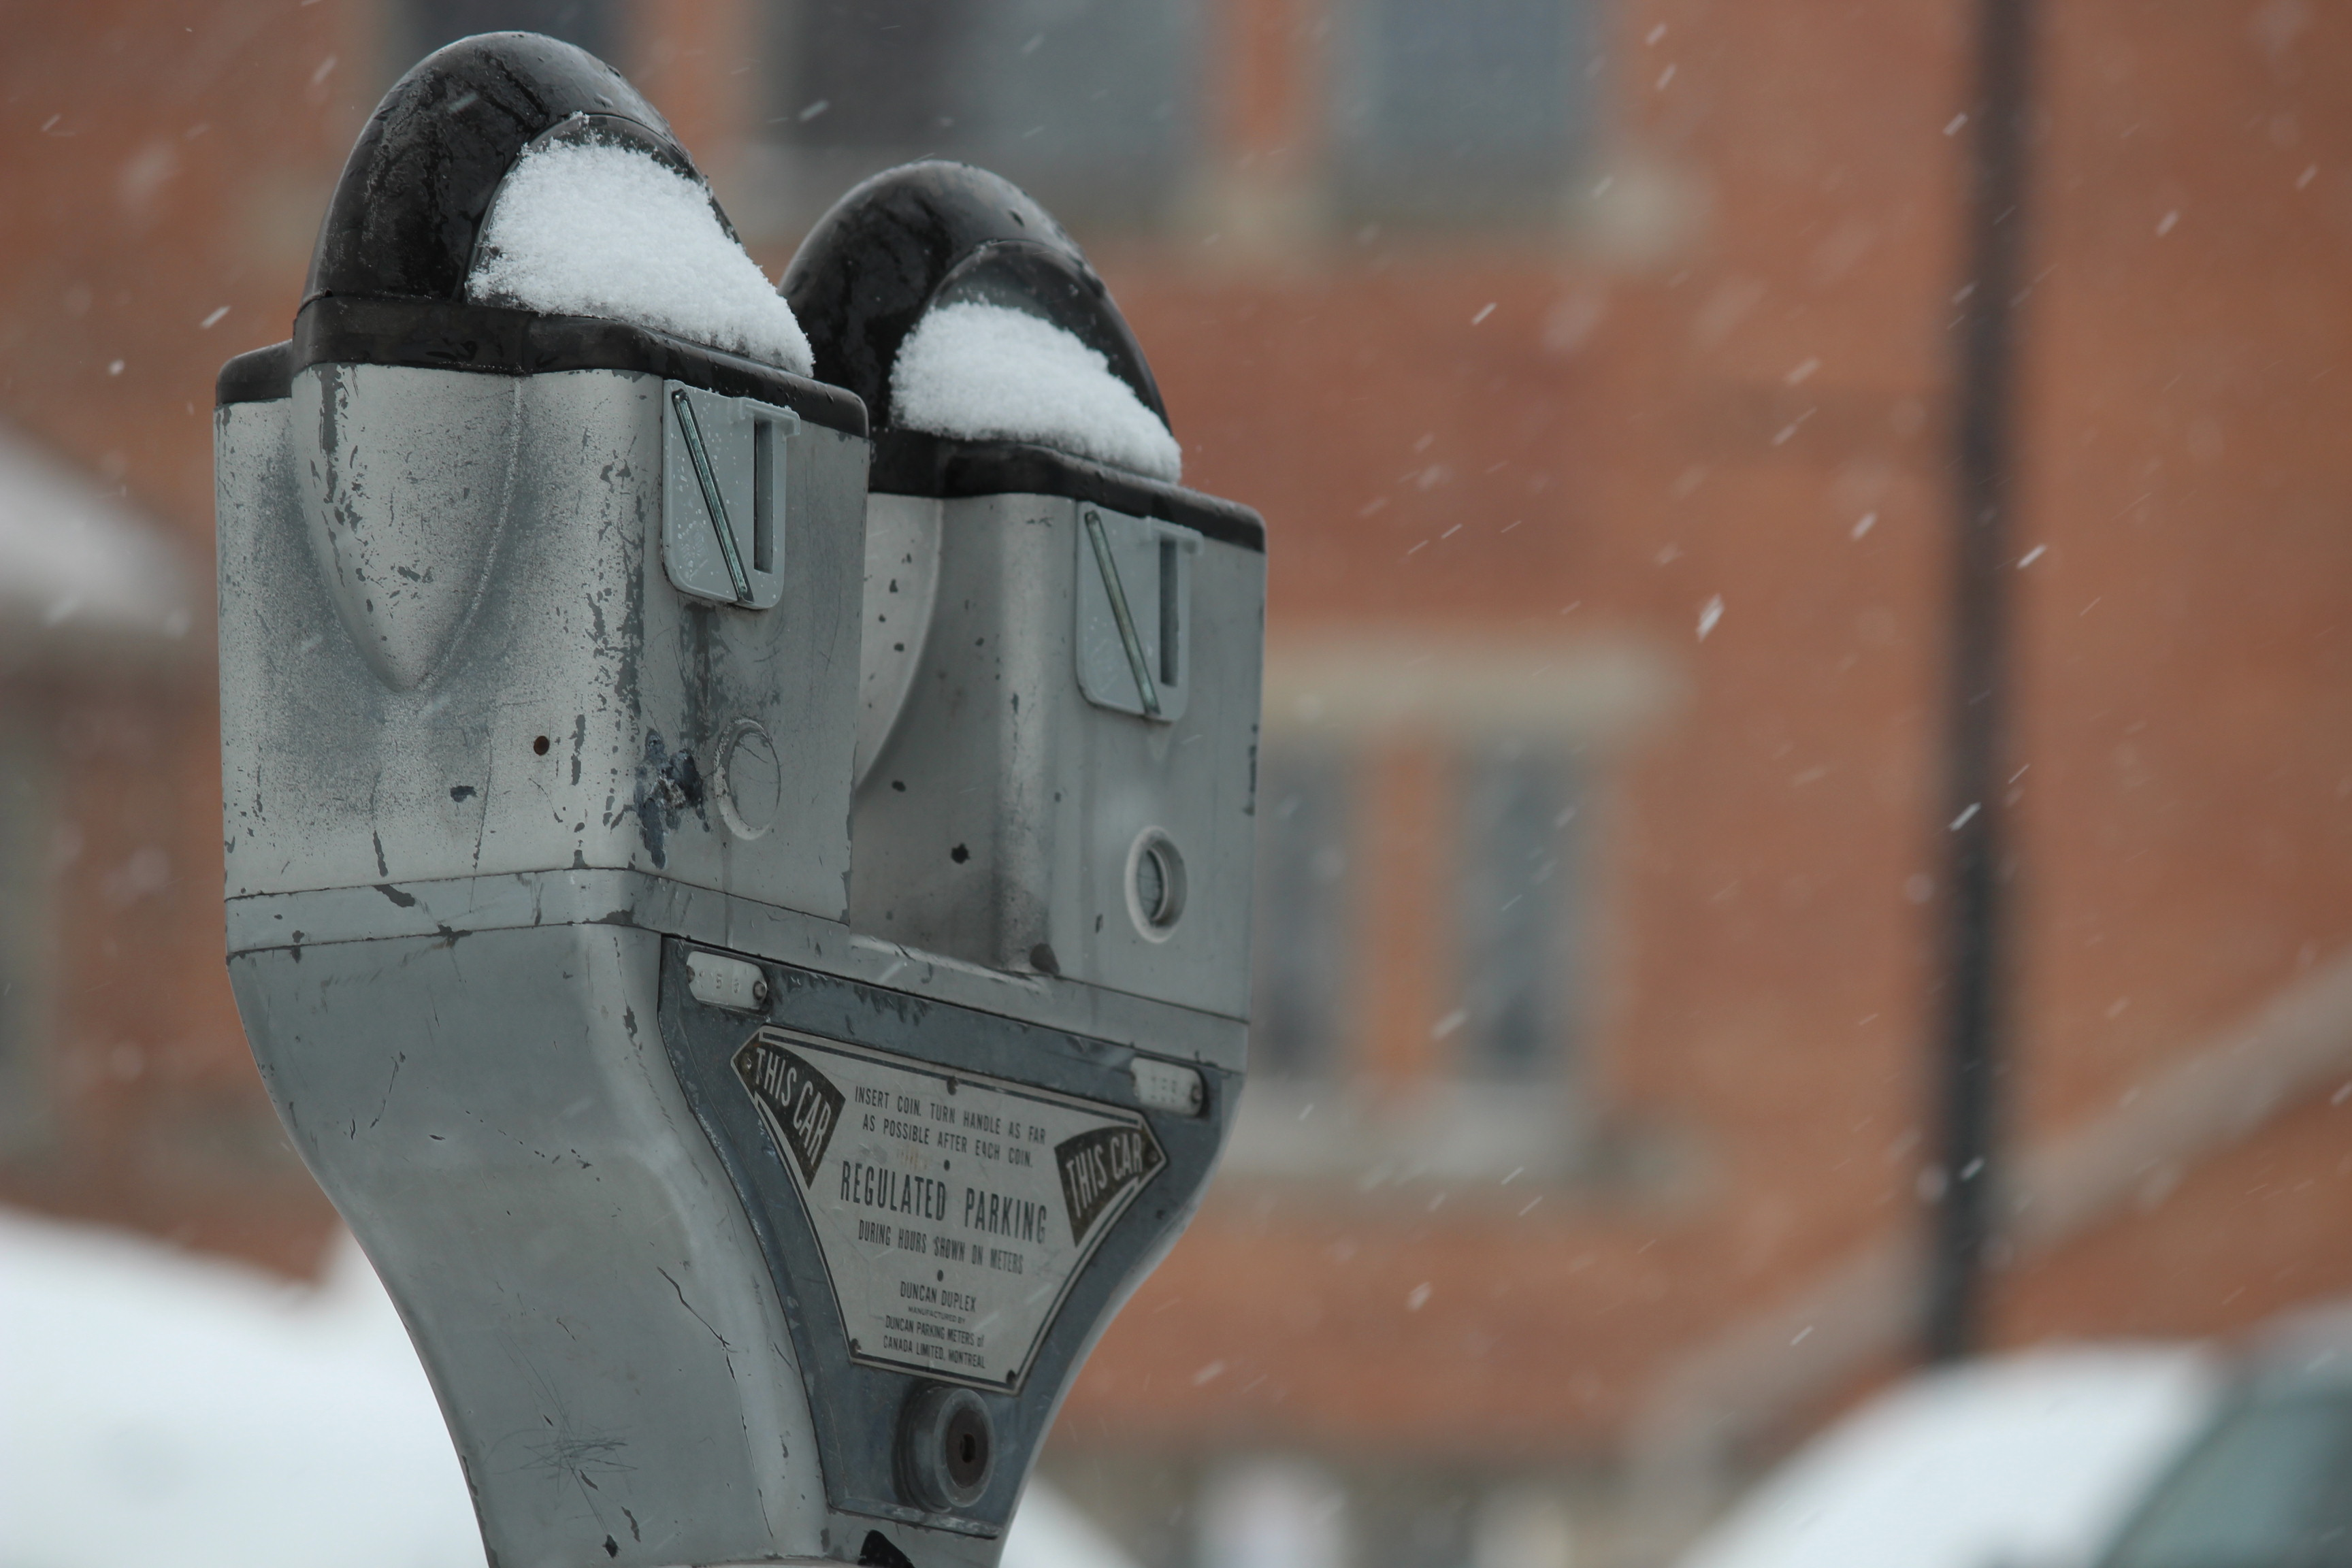 BlackburnNews.com file photo of a parking meter. (Photo by Jason Viau)